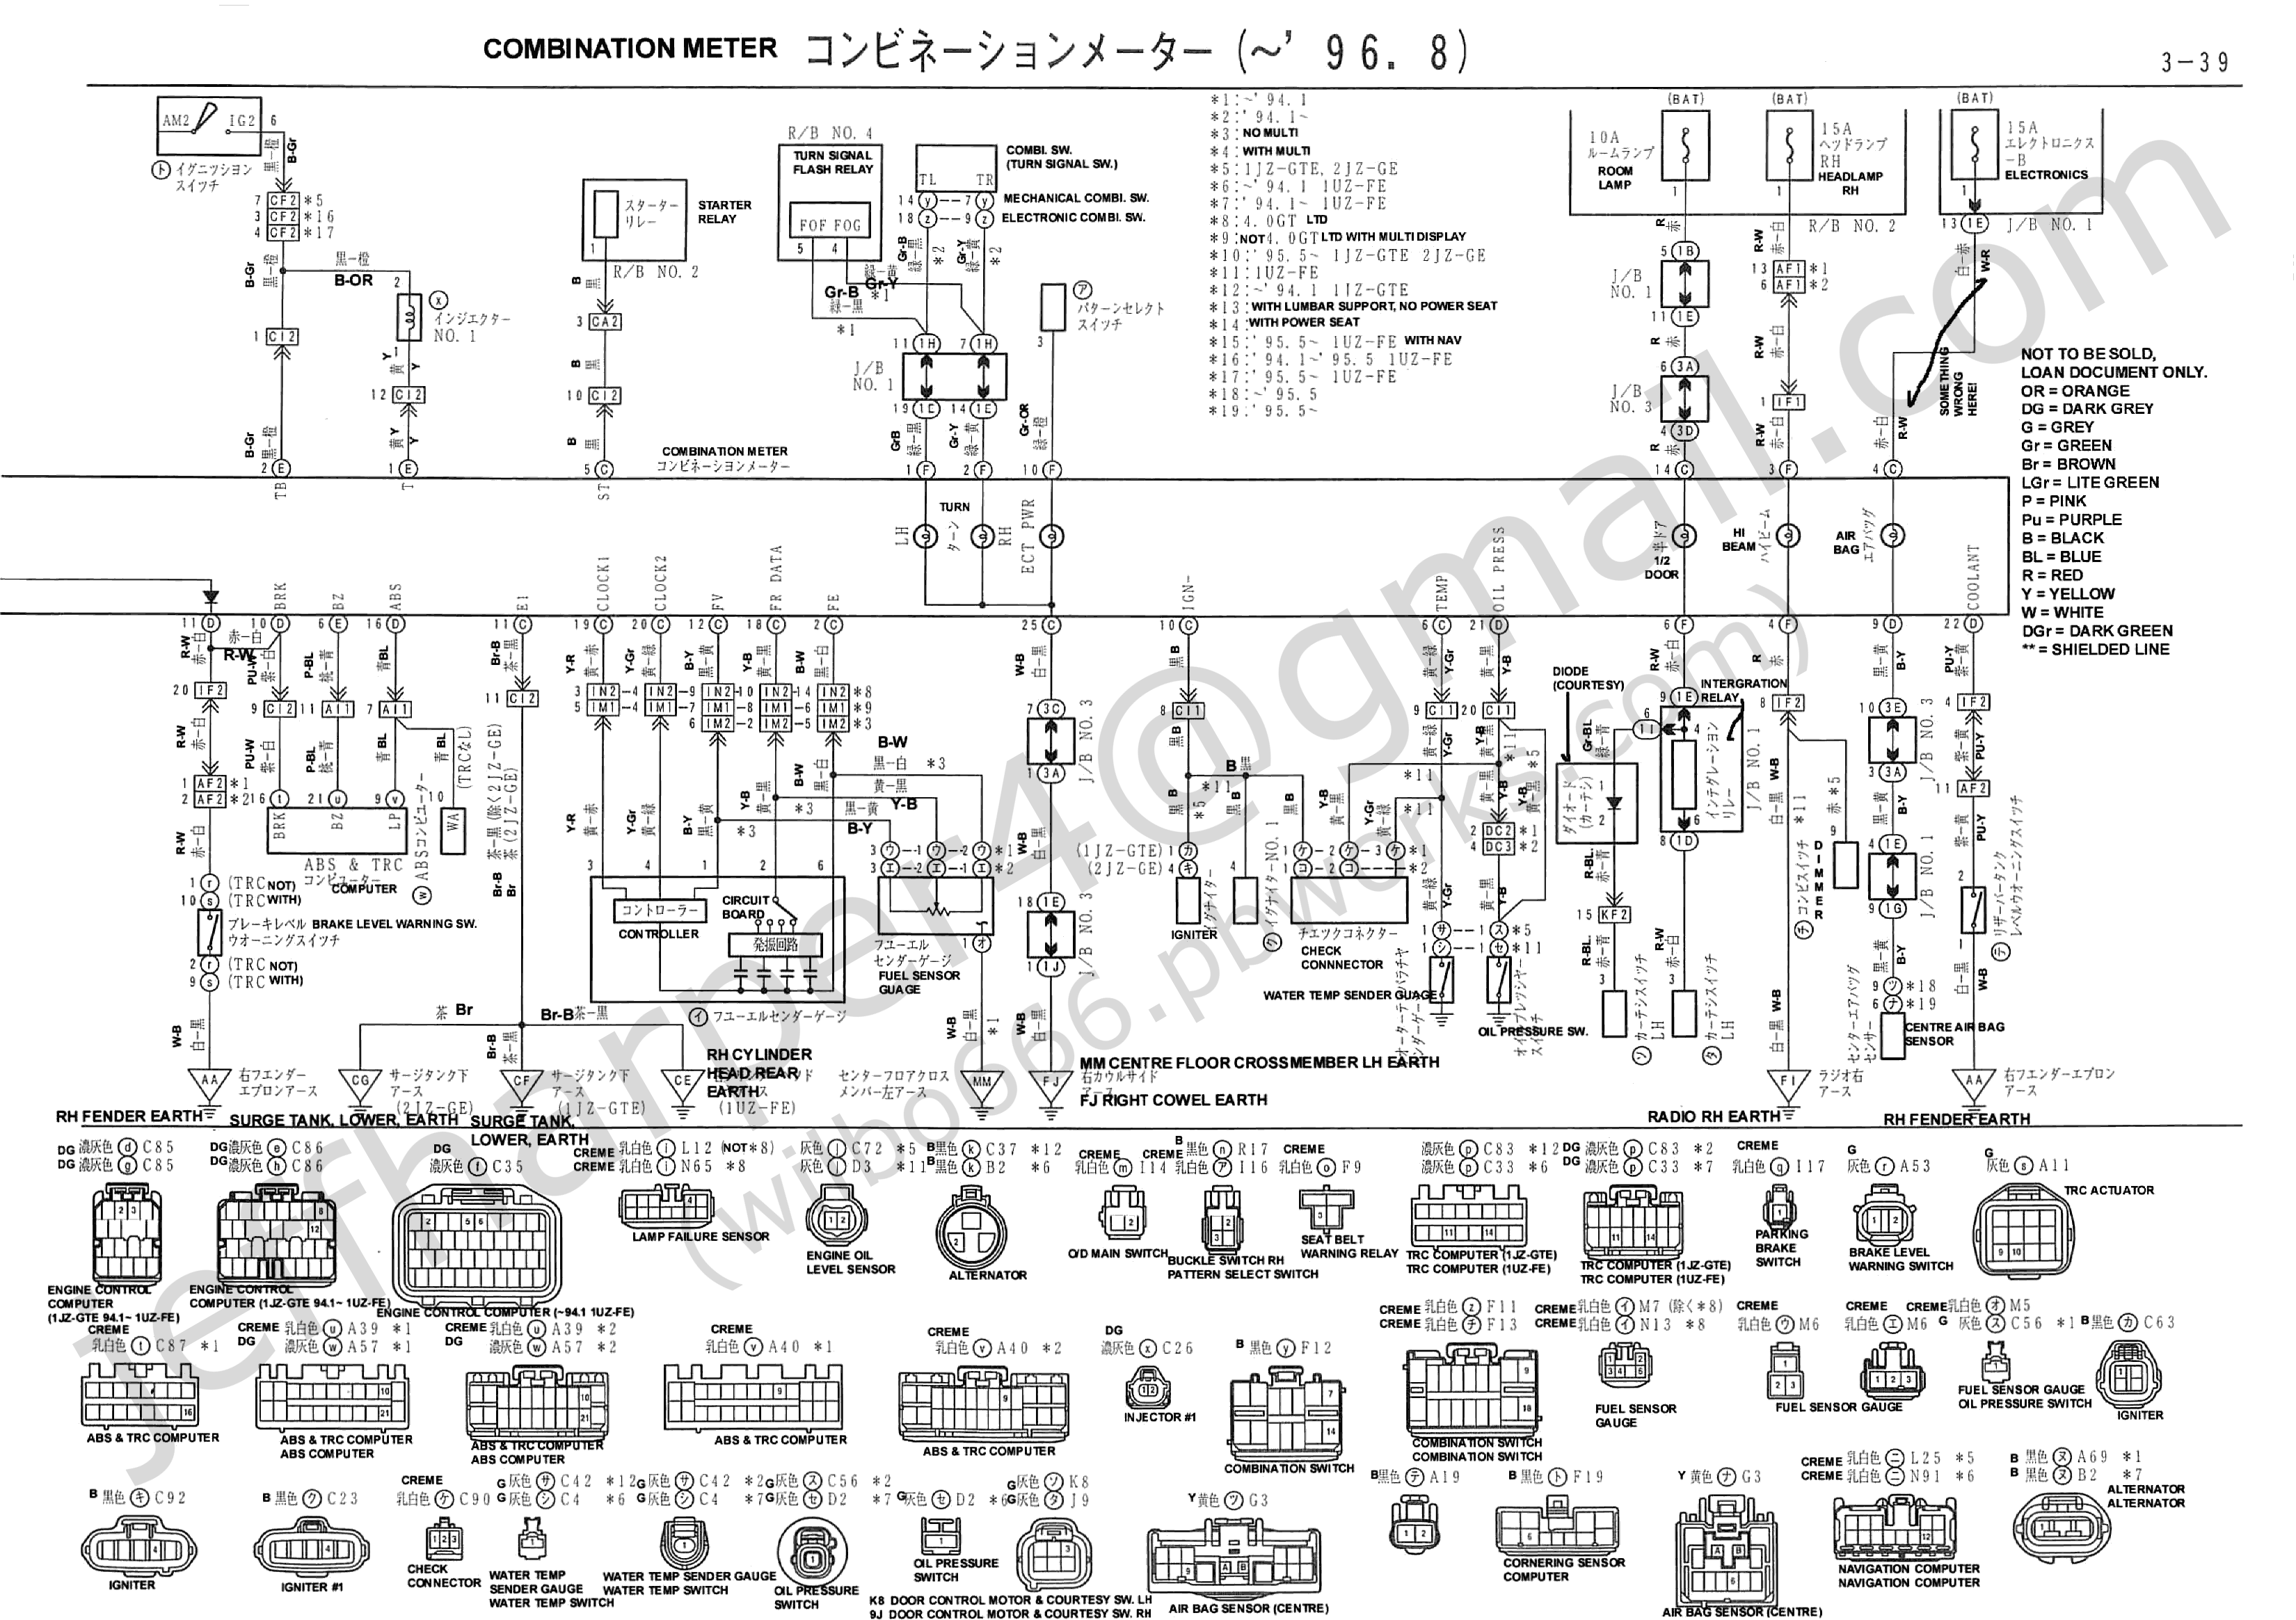 1jz gte engine diagram 1jz automotive wiring diagrams xzz3x%20electrical%20wiring%20diagram%206737105%203 39